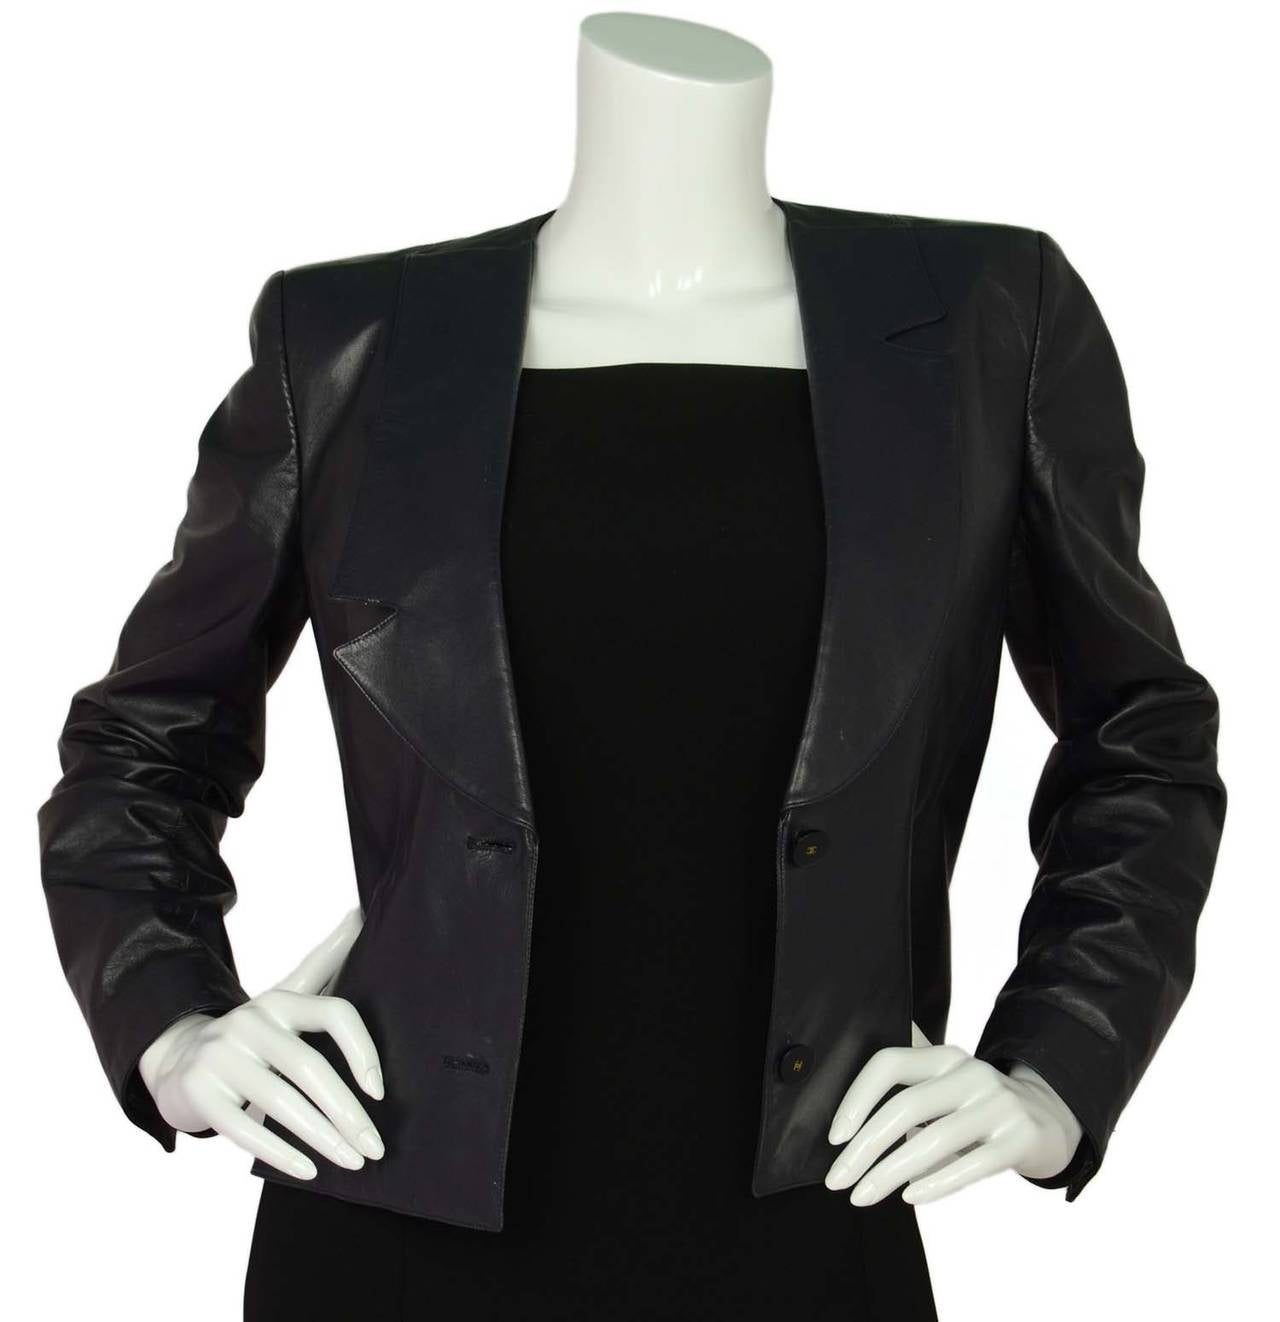 CHANEL Navy Leather Button Front Jacket sz 40 In Excellent Condition For Sale In New York, NY